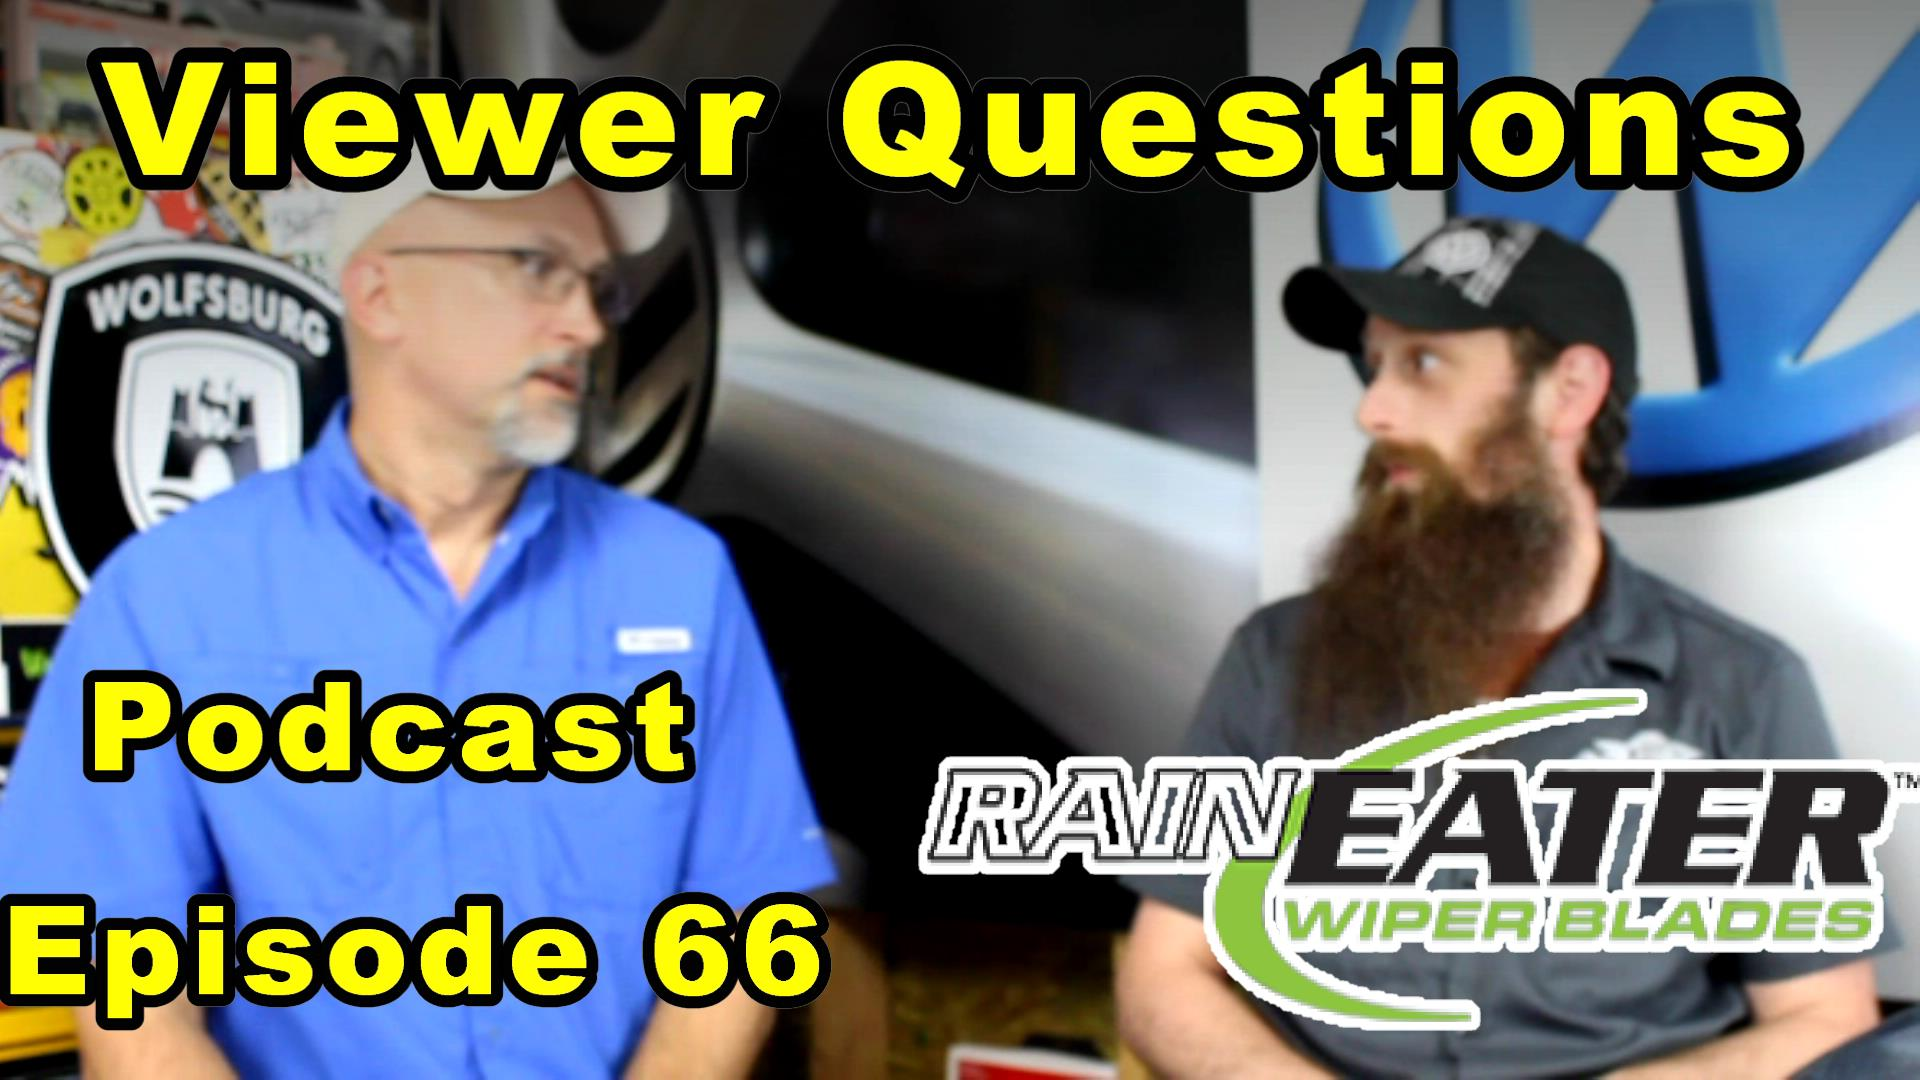 Viewer Car Questions ANSWERED ~ Audio Podcast Episode 66